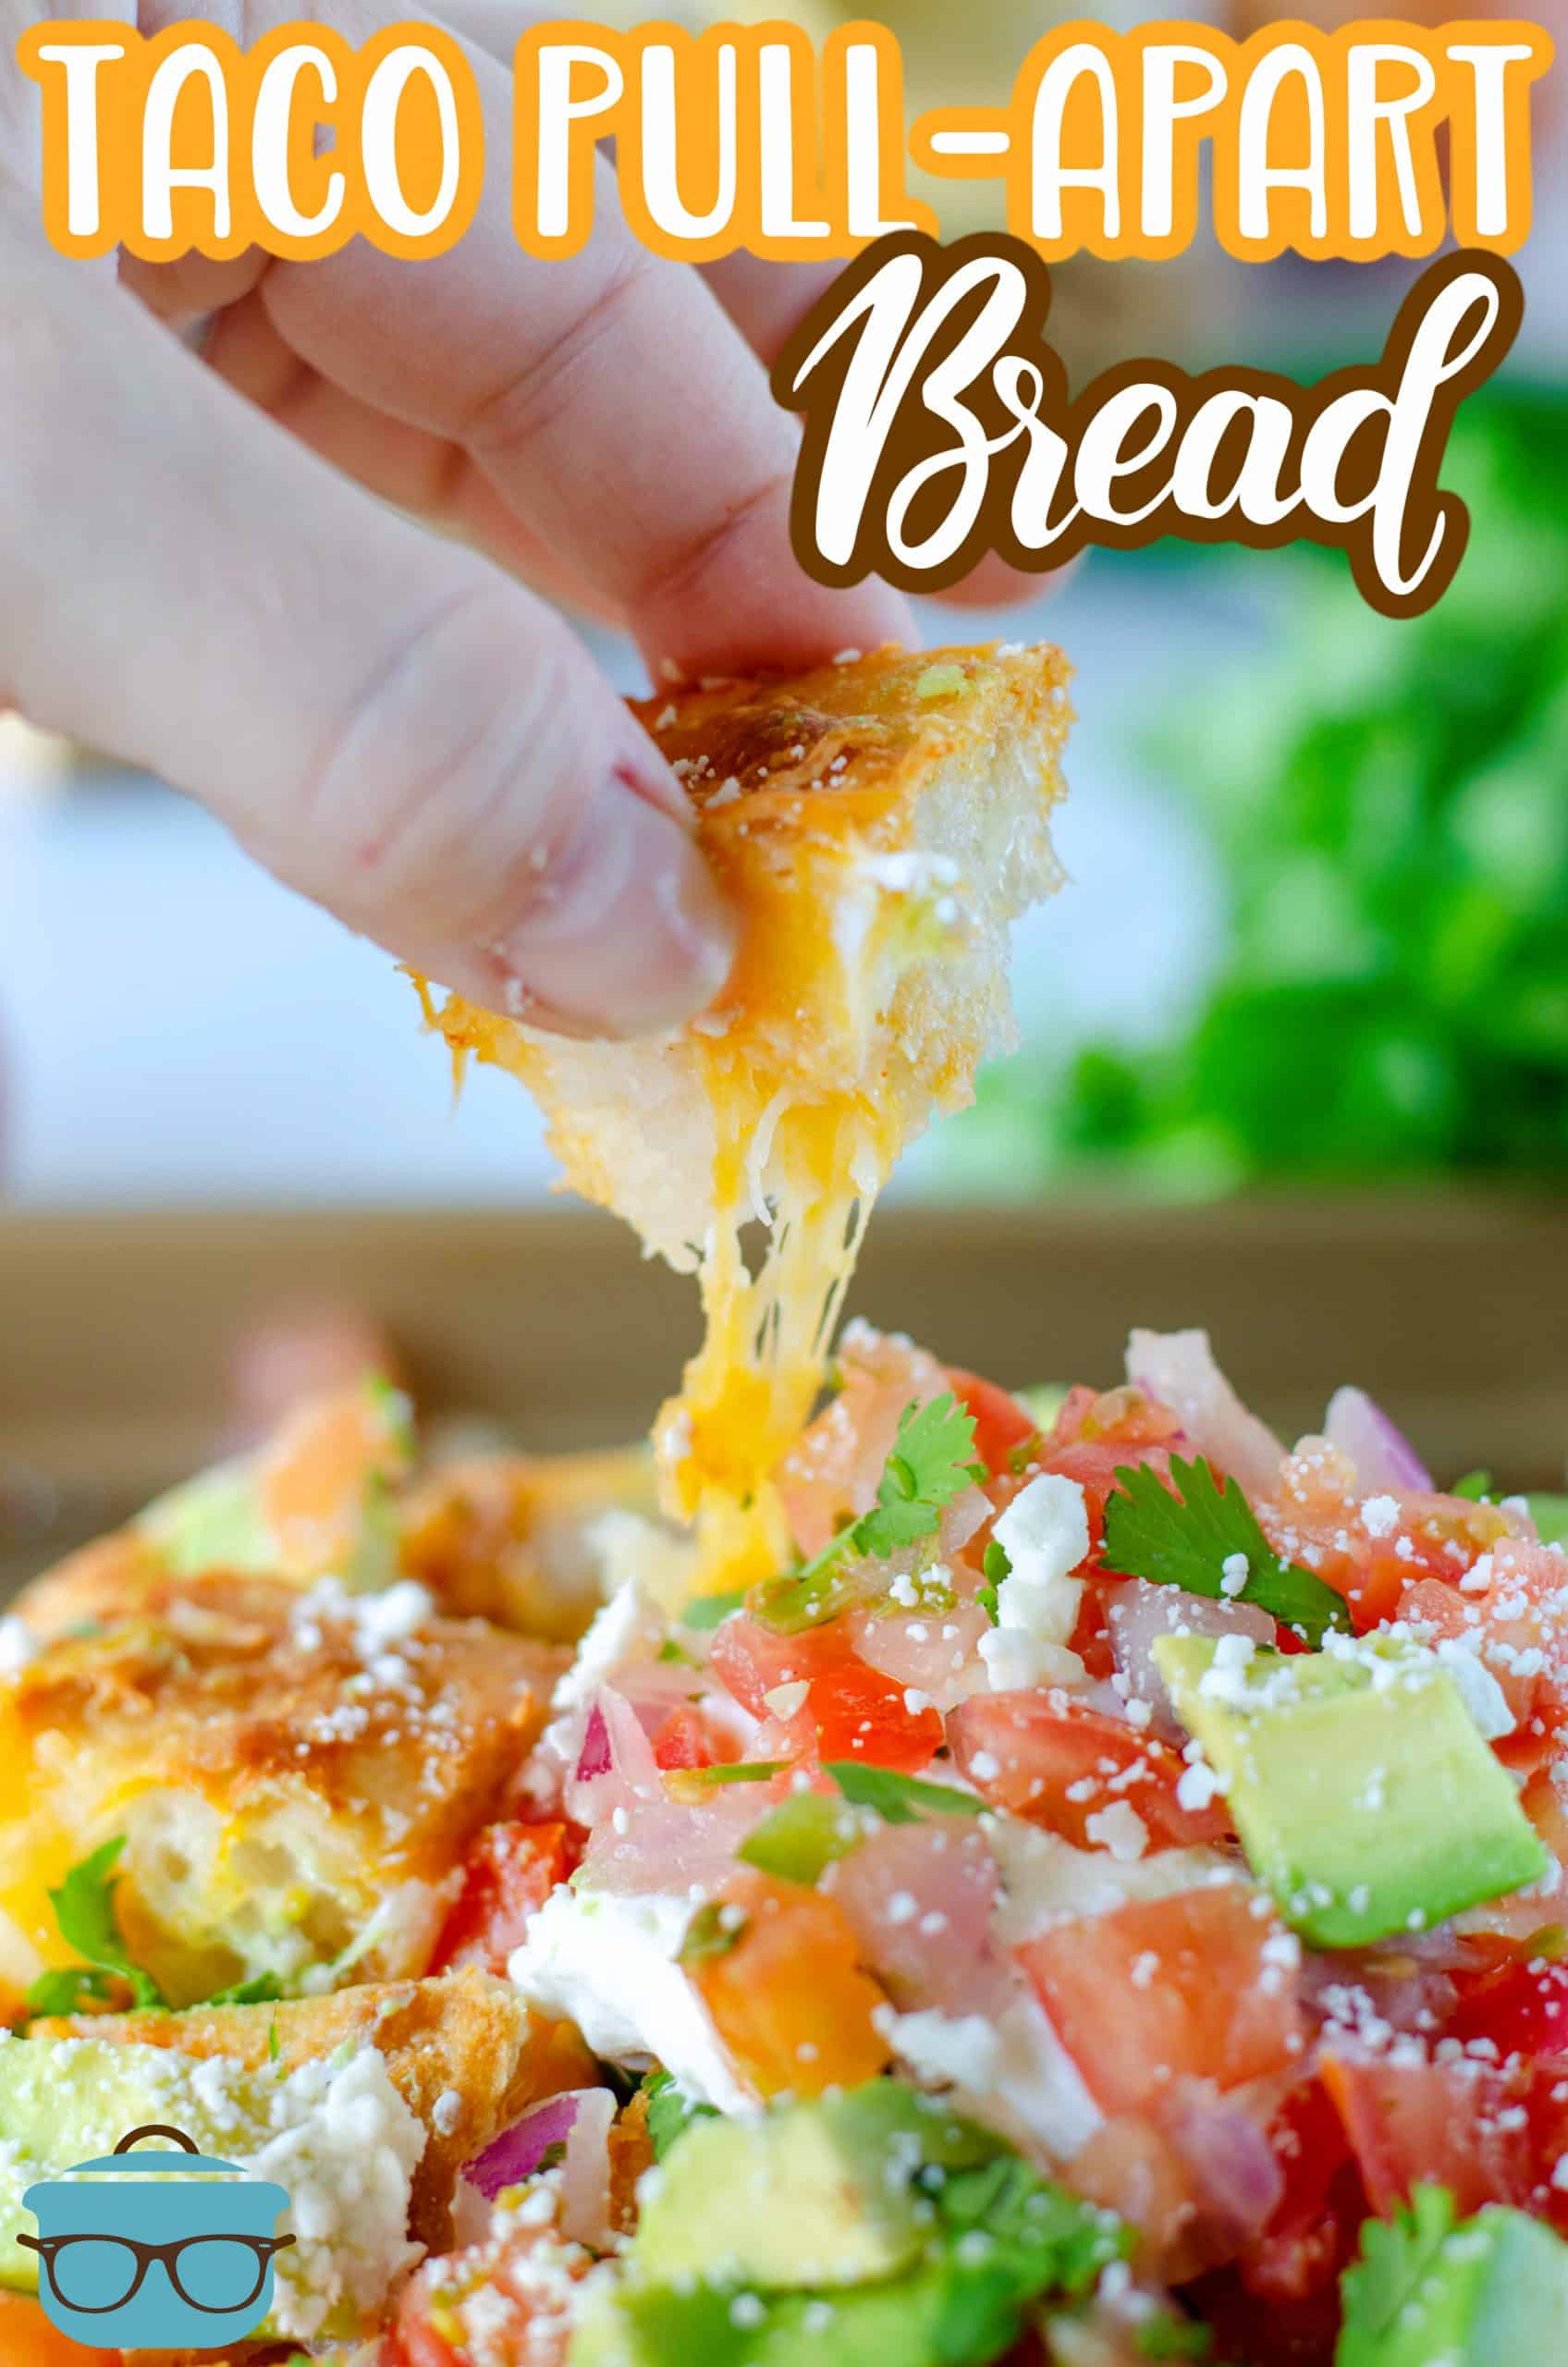 Taco Pull Apart bread will be your new favorite appetizer! It is an easy and delicious recipe to make and you can add your favorite taco inspired toppings!